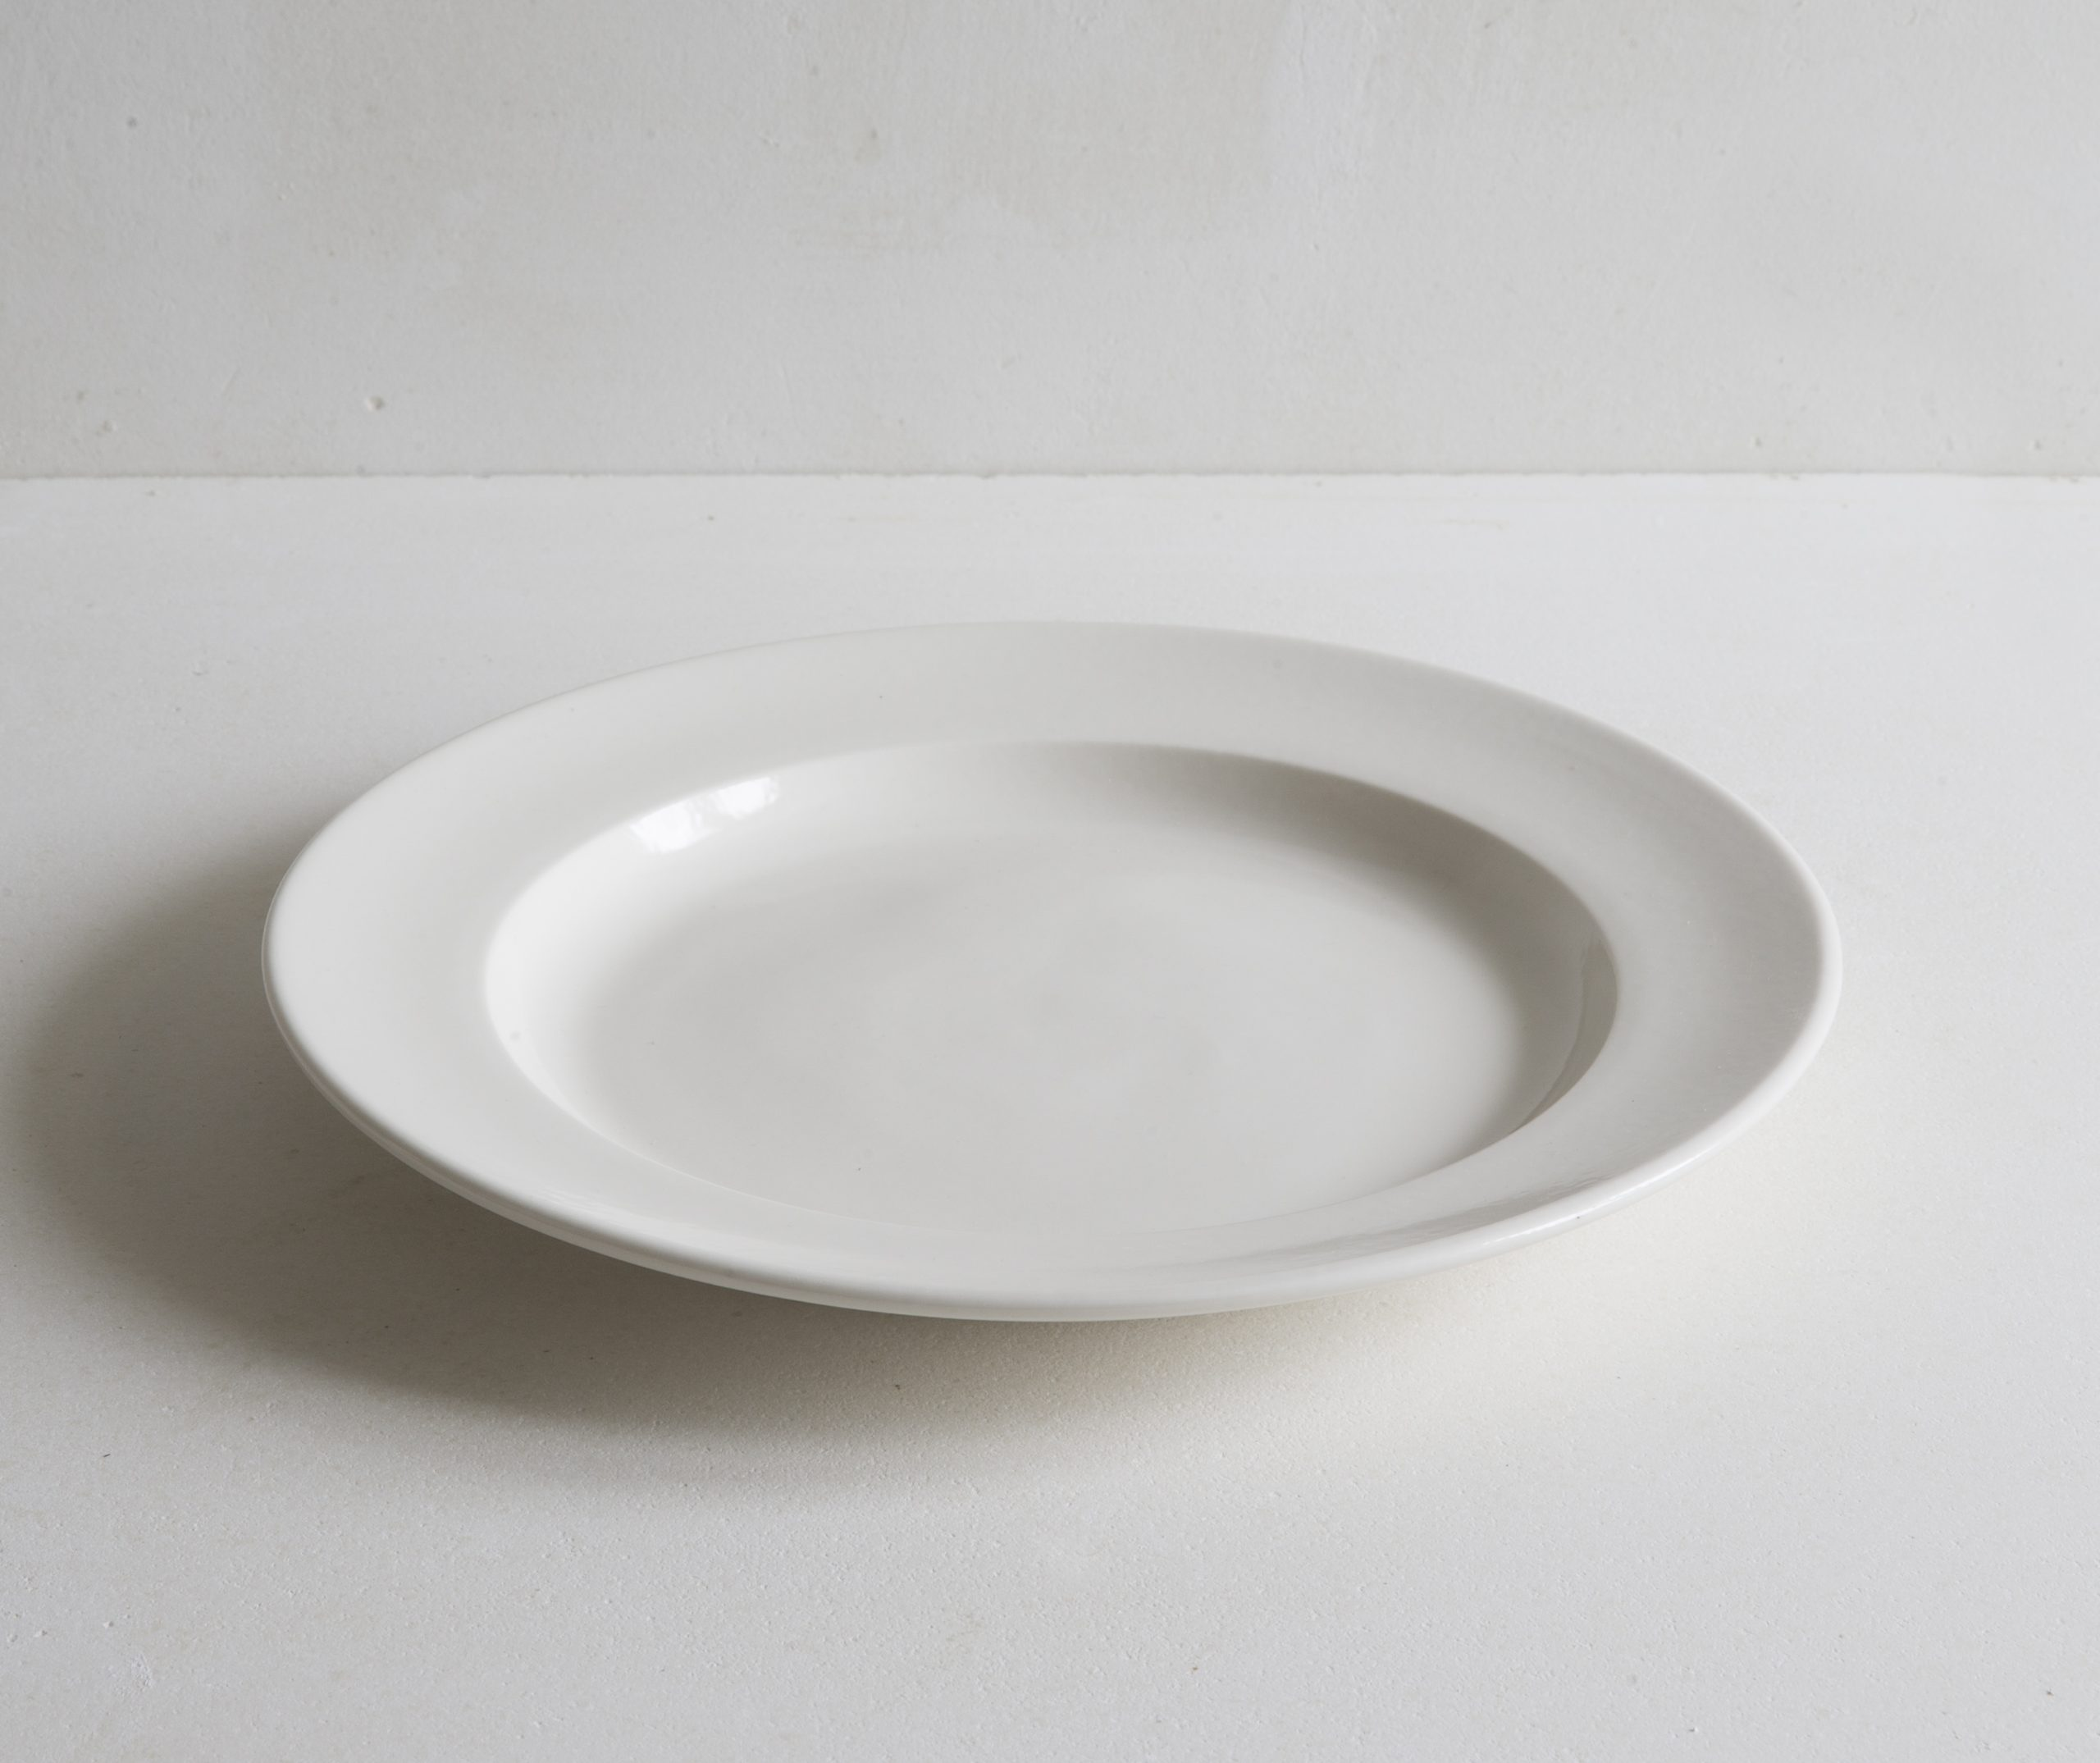 Classical Porcelain Dinner Plate 27cm Flat View